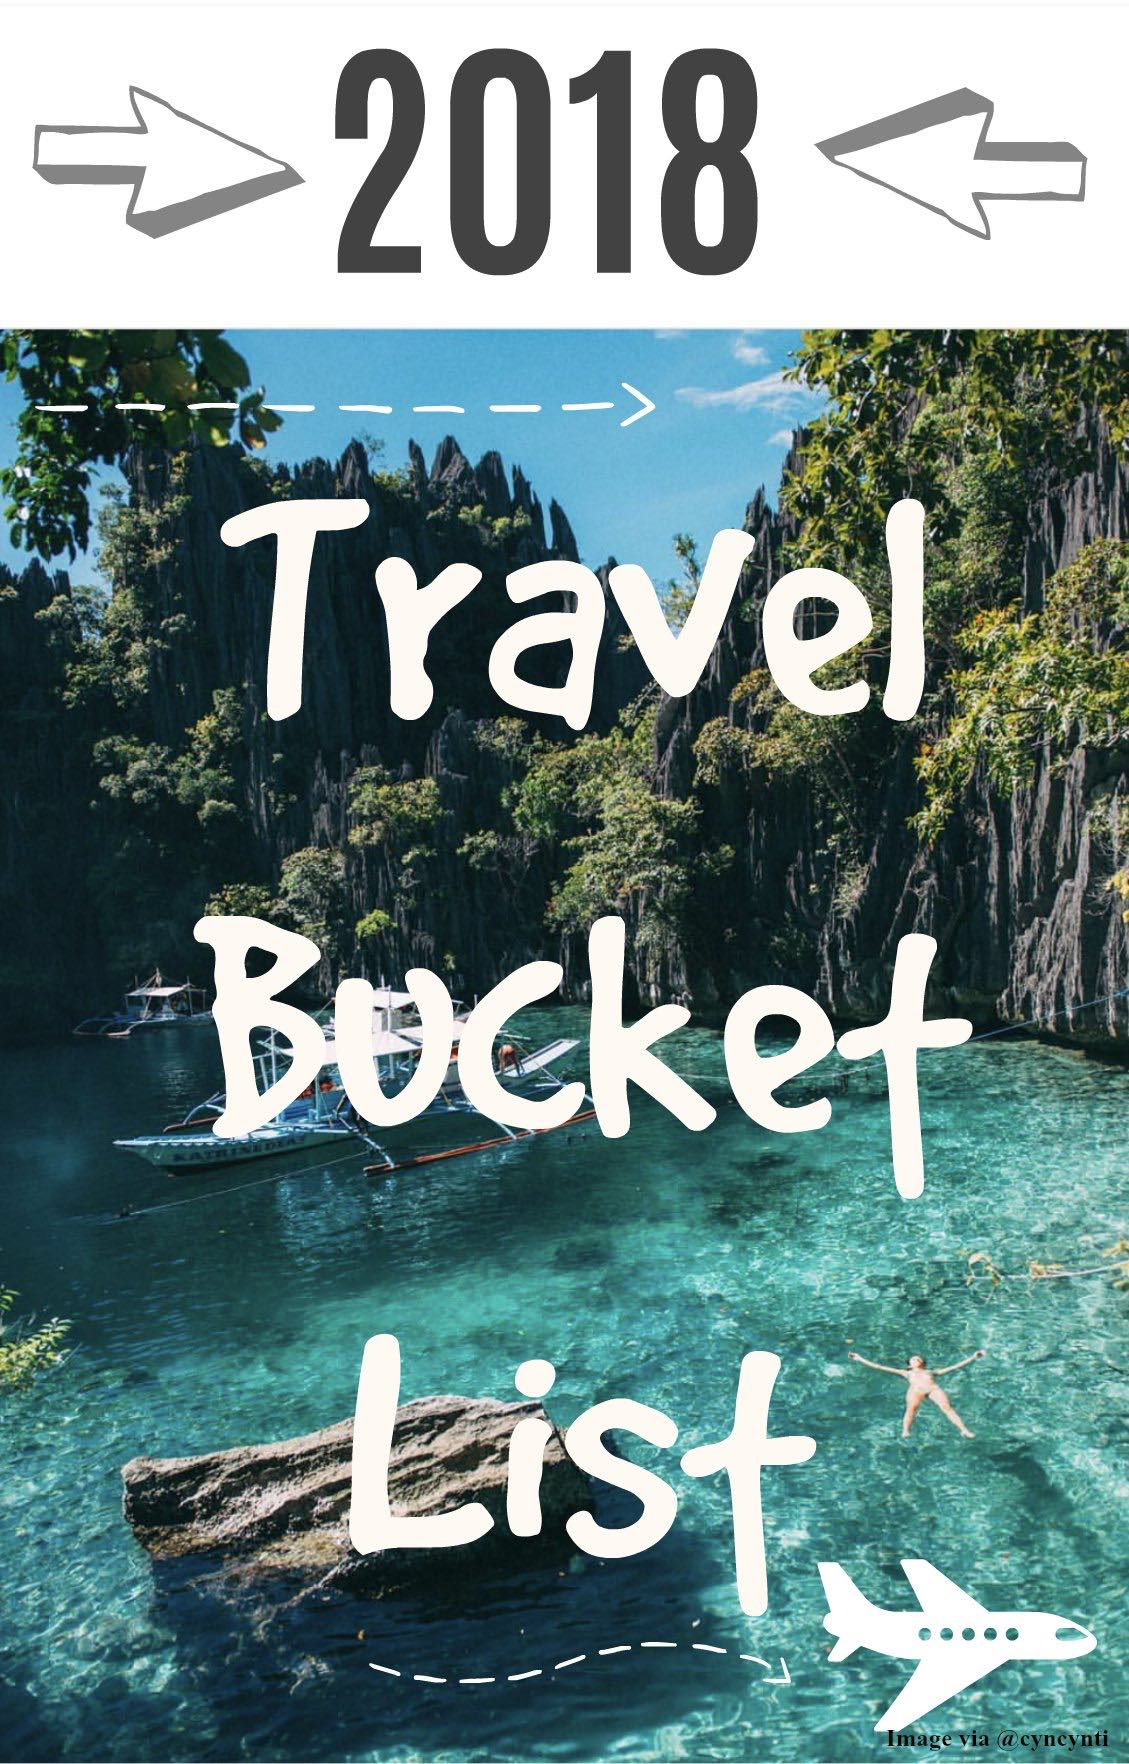 2018 Travel Bucket List